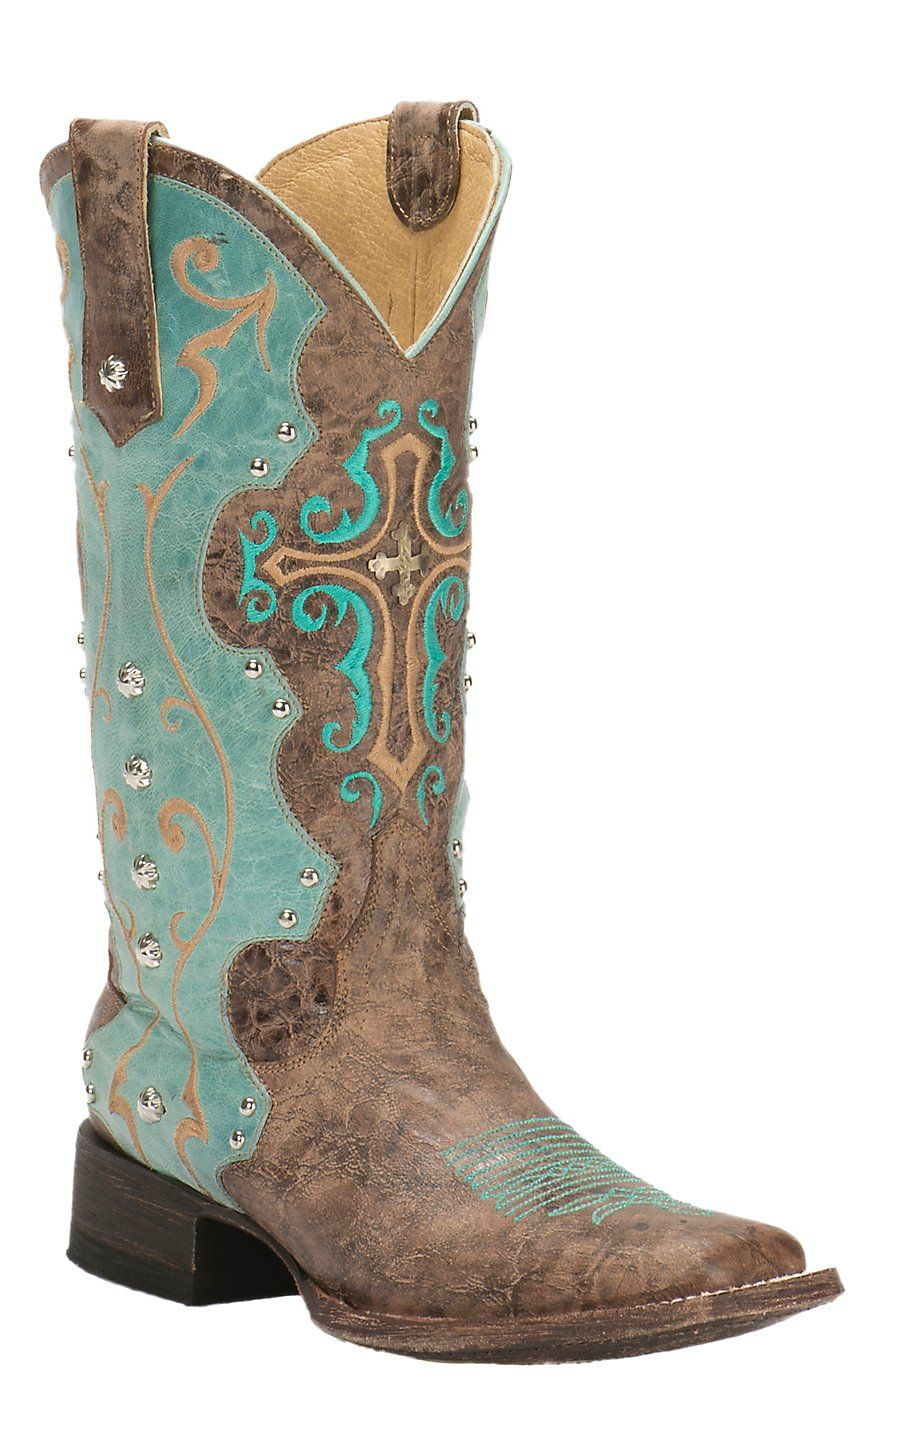 f543e9d6f35 Cavender's by Old Gringo Women's Vintage Brown & Aqua Goat with ...